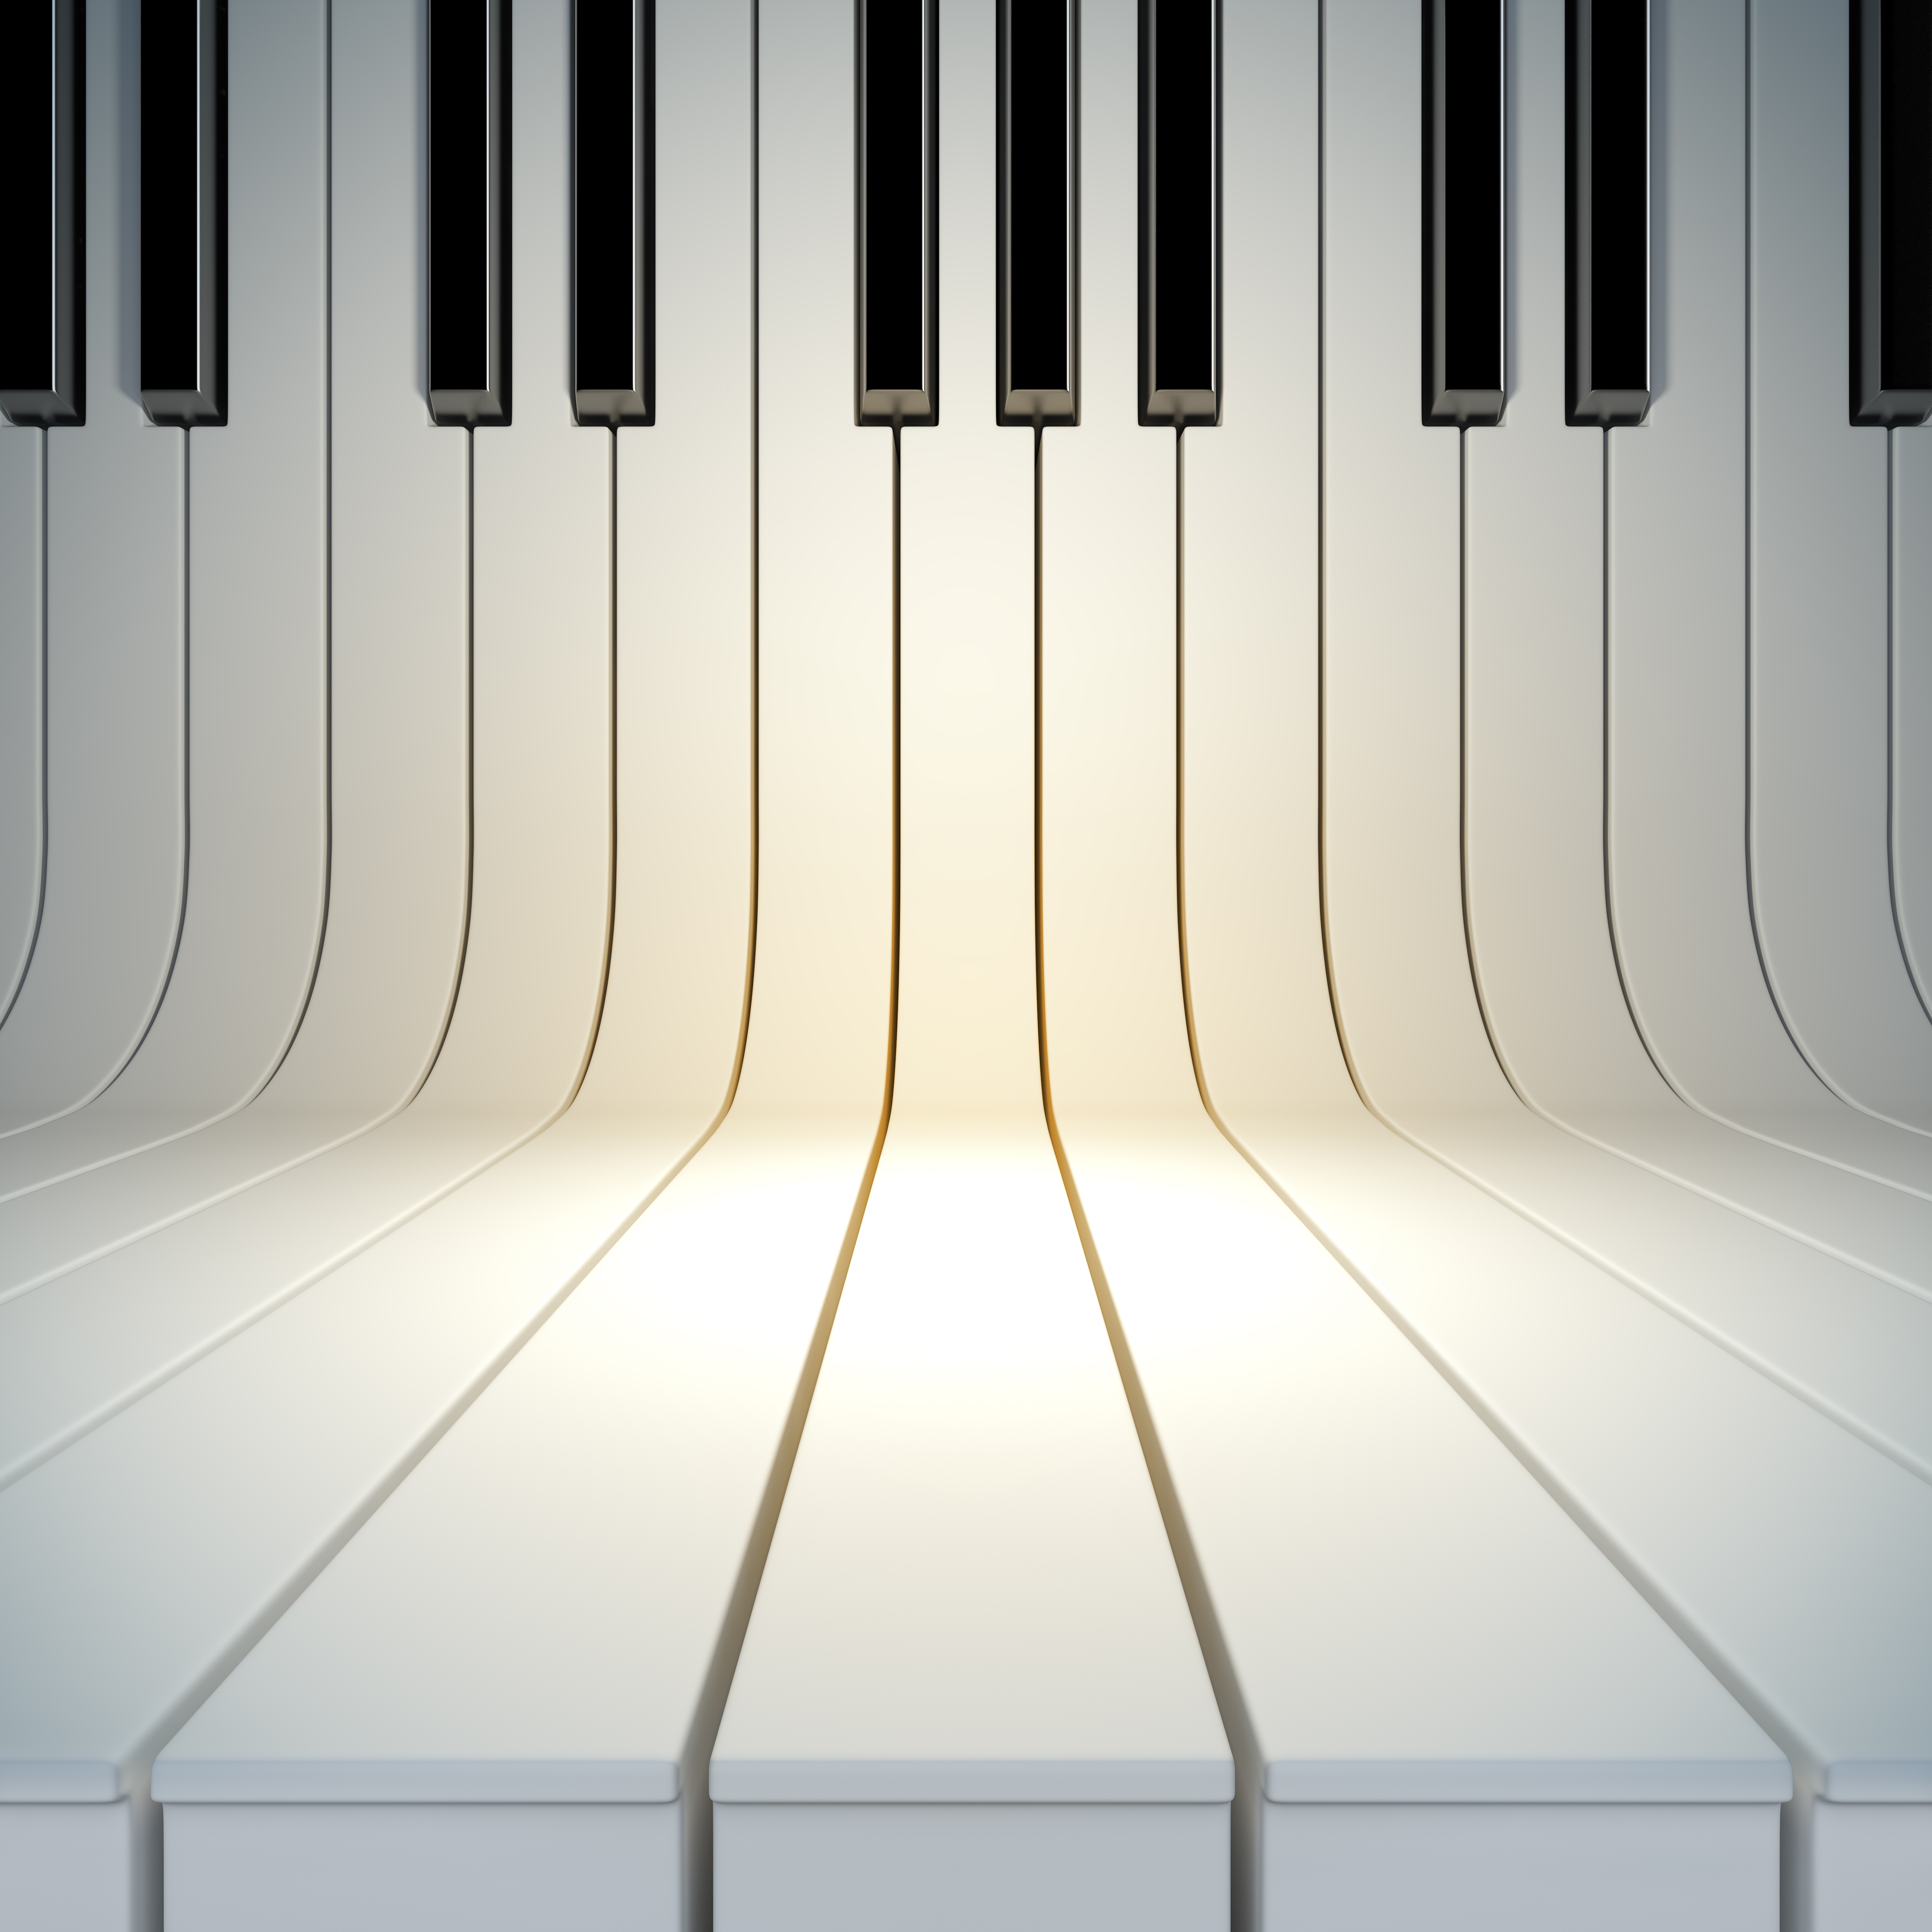 CSU Piano Studio Recital